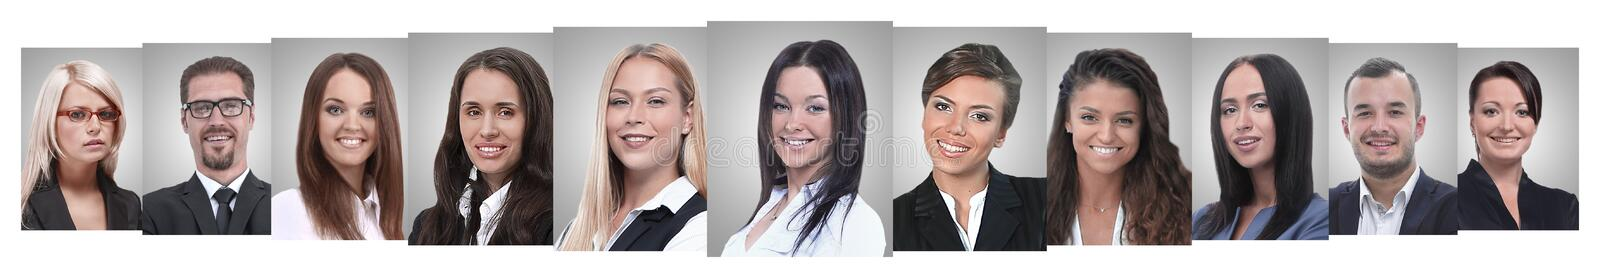 Panoramic collage of portraits of successful business people stock photos